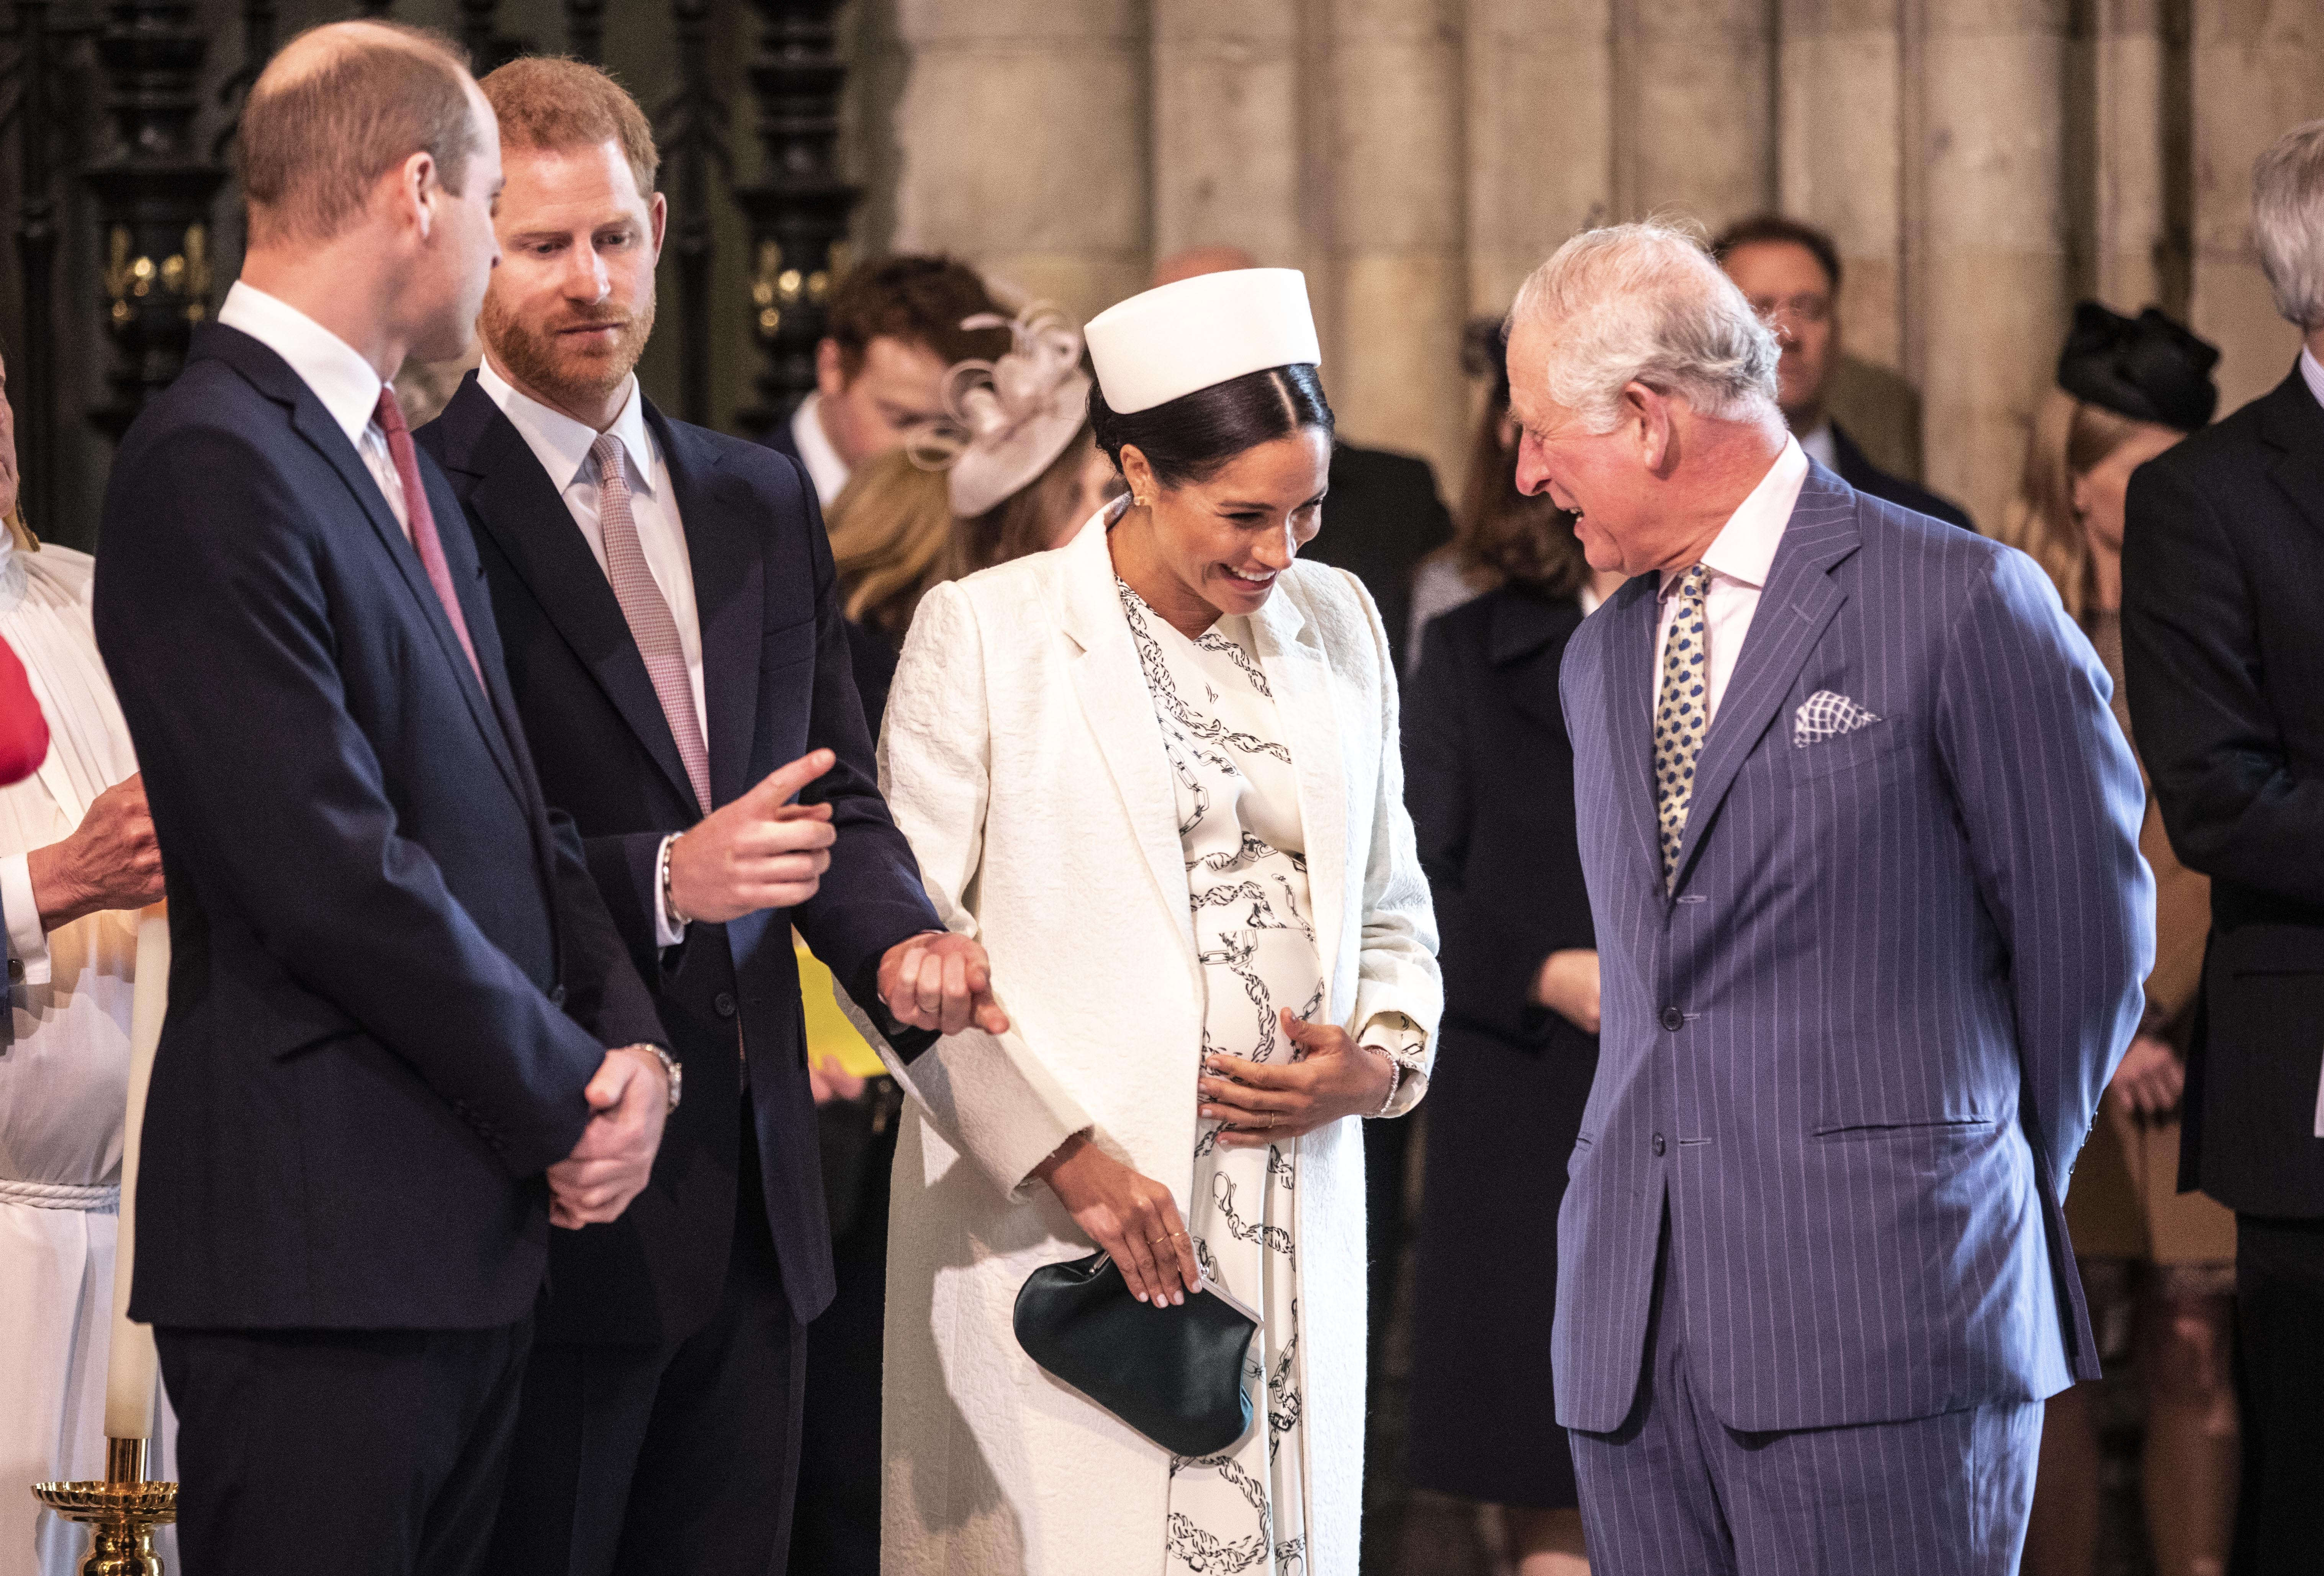 Meghan Markle talks with Prince Charles at the Westminster Abbey Commonwealth day service on March 11, 2019 in London, England | Photo: Getty Images